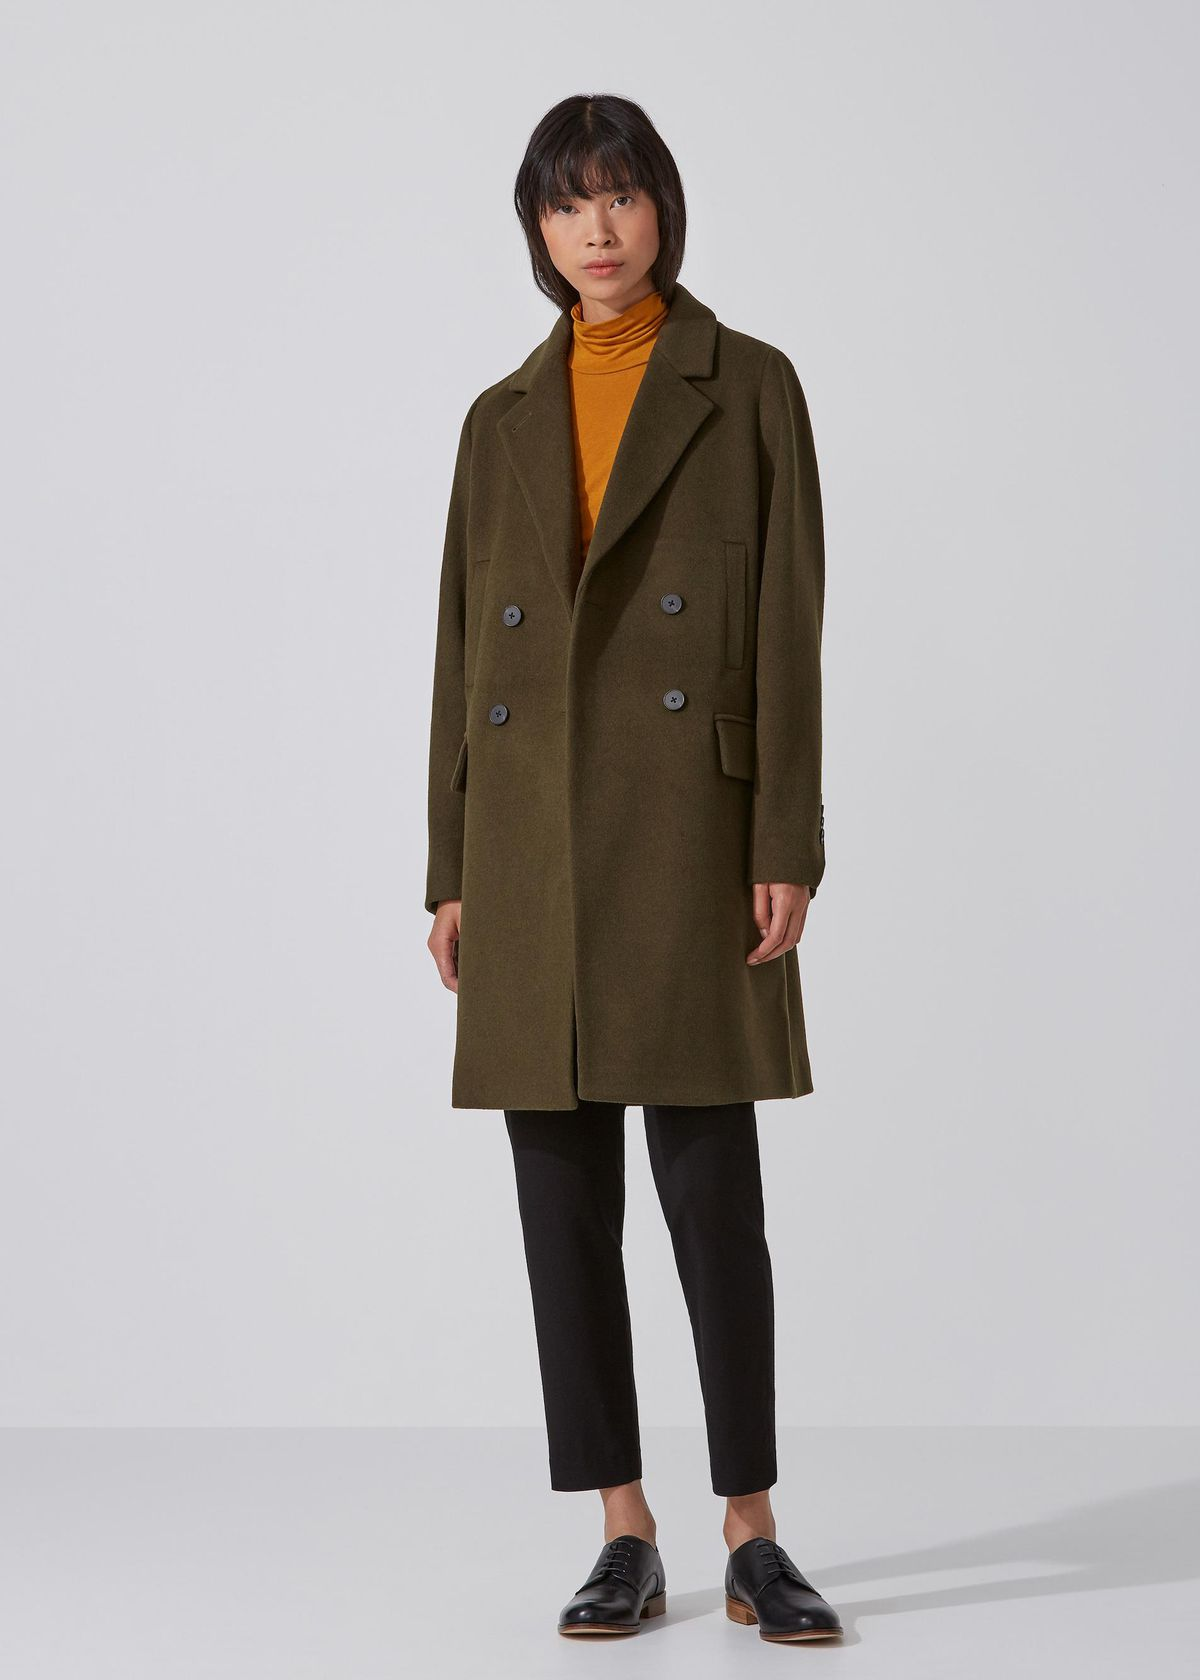 4c943a755 Where to Buy a Really Good Coat - Racked